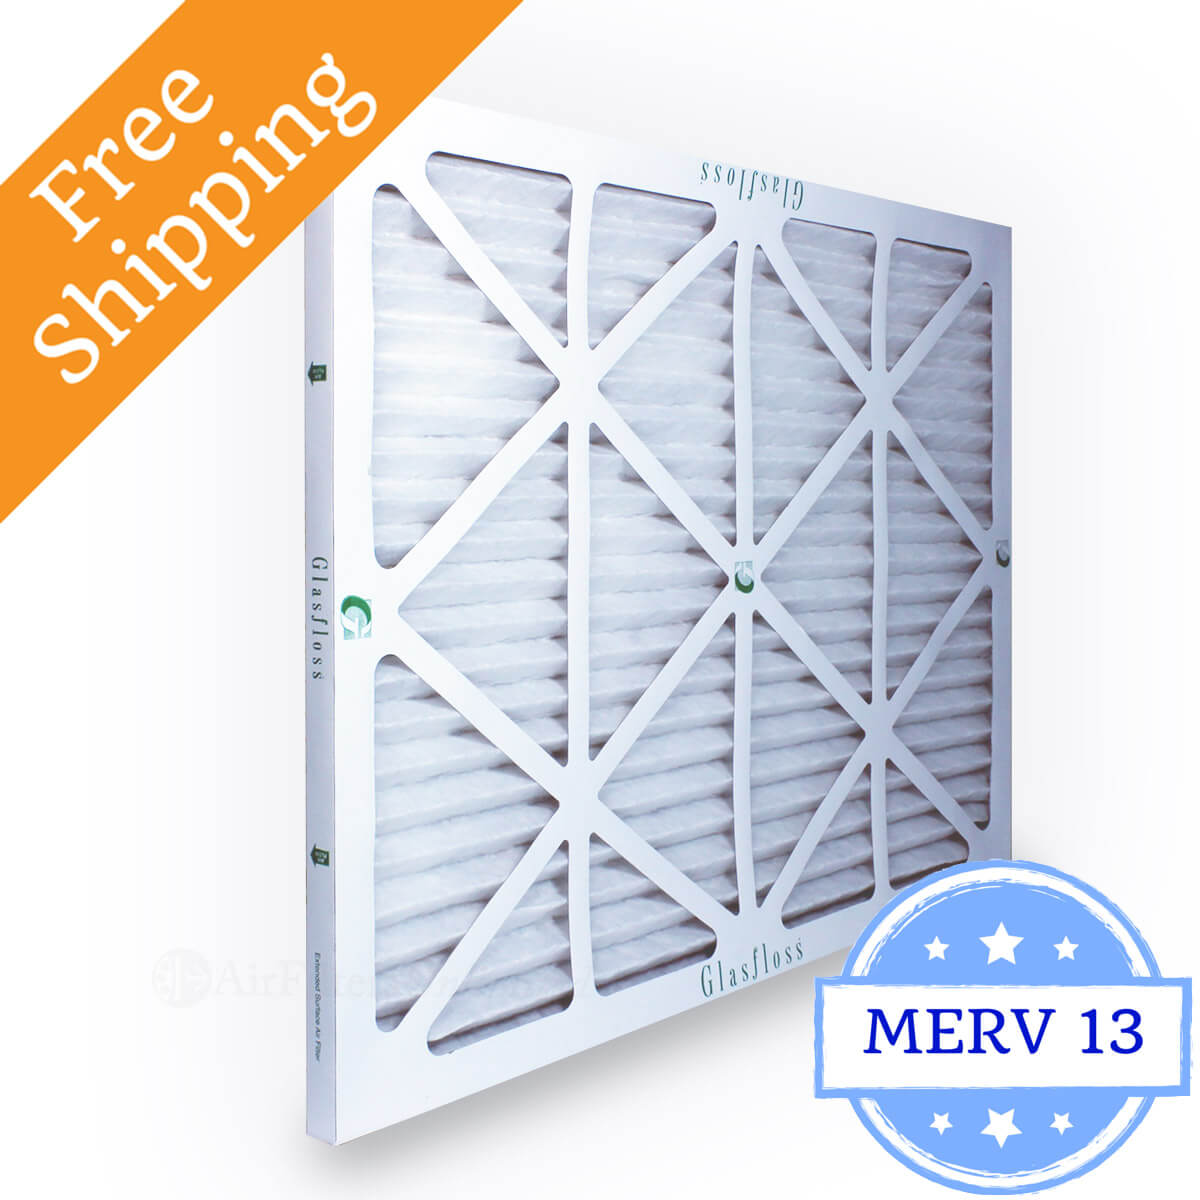 Glasfloss 10x20x1 Air Filter MR-13 Series